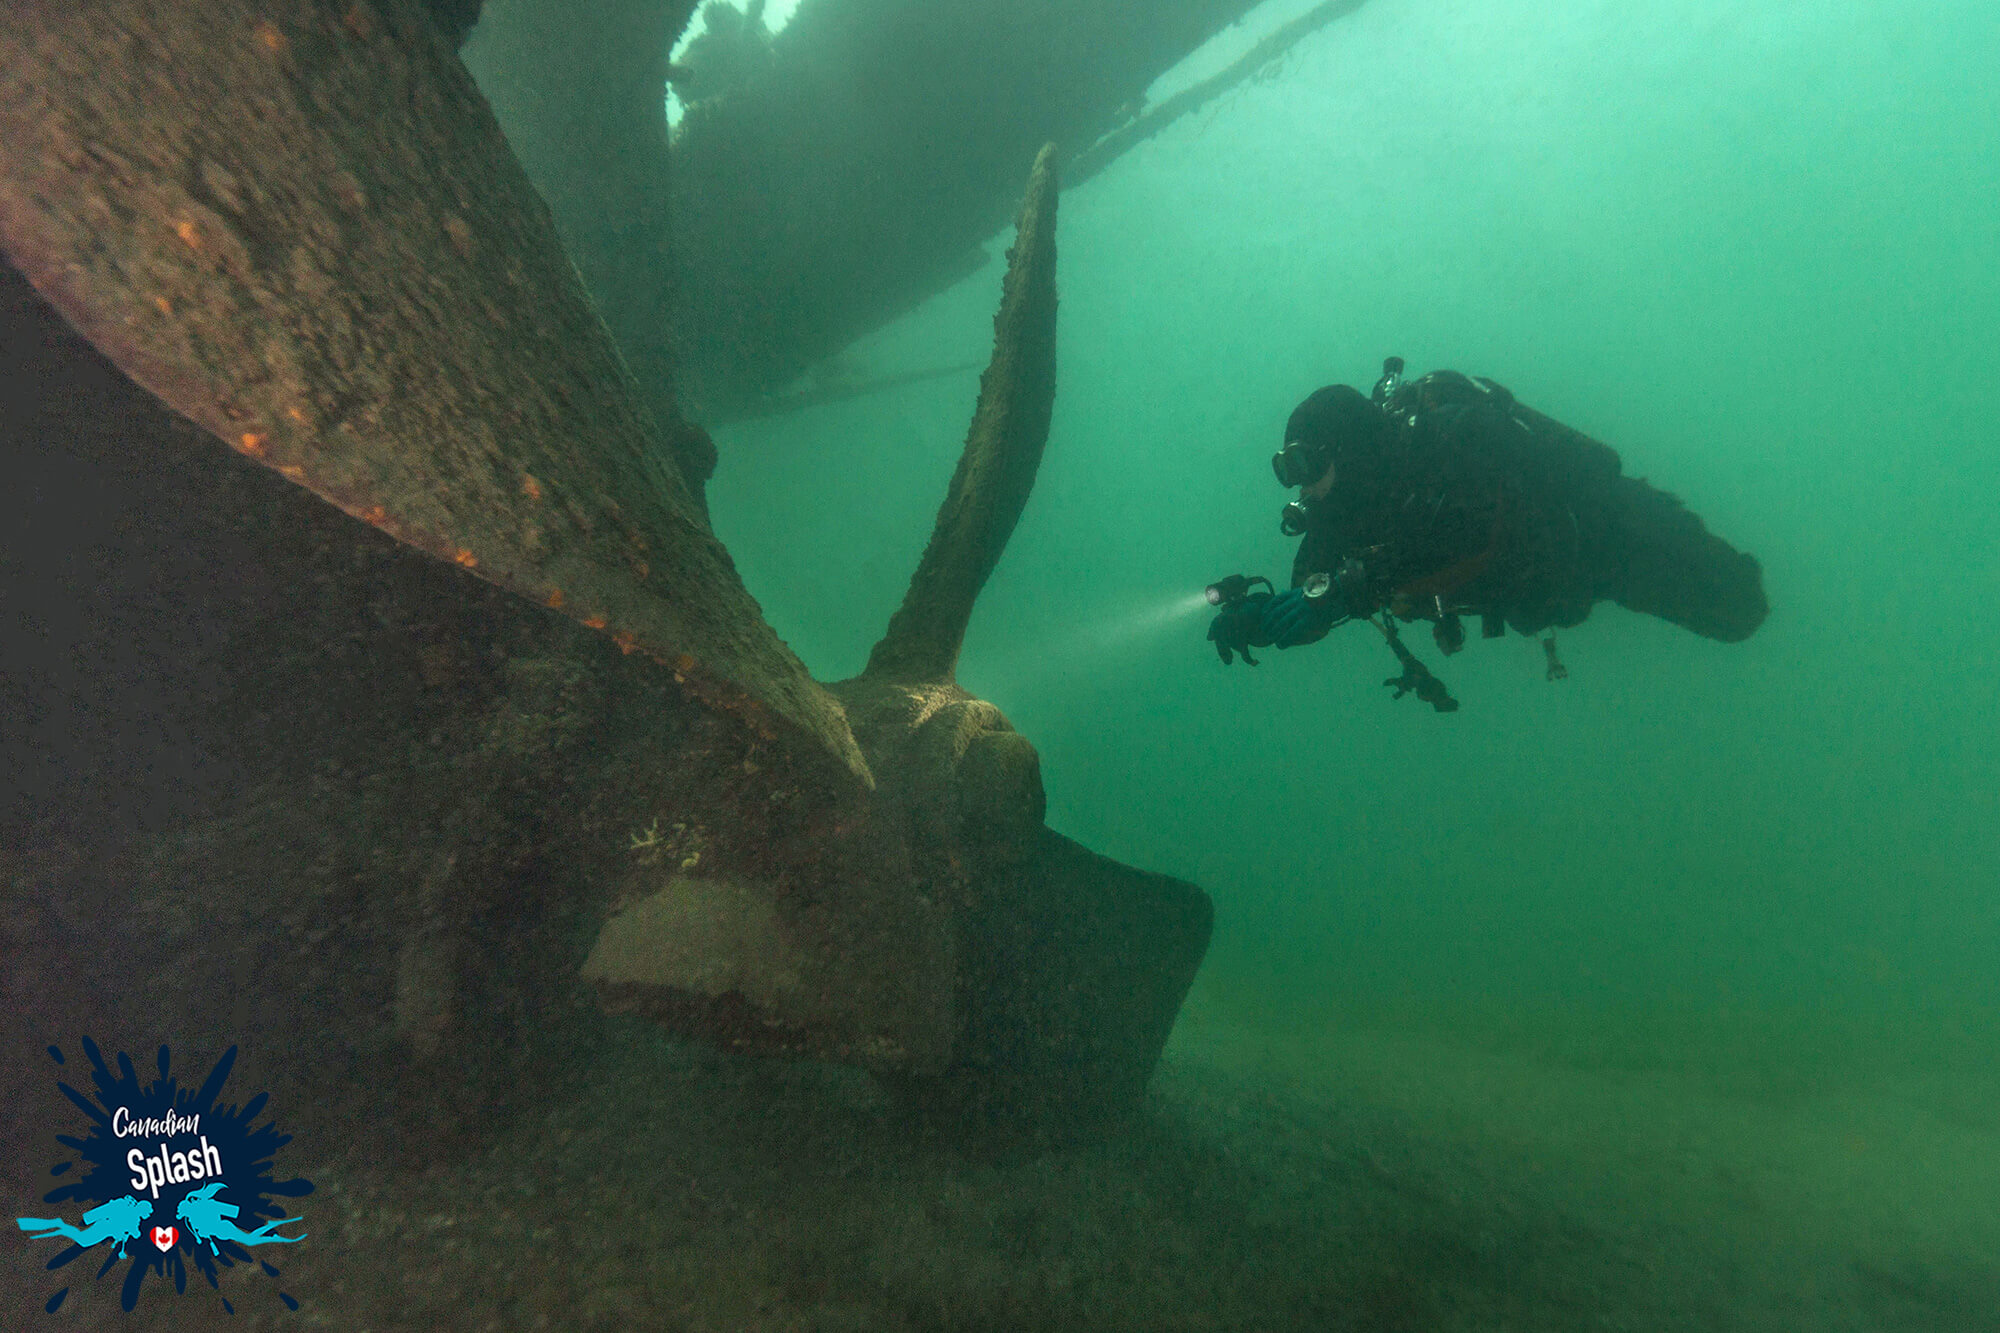 Scuba Diver Joey And The Large Propeller Of The Conestoga Shipwreck In Cardinal, Ontario For Canadian Splash